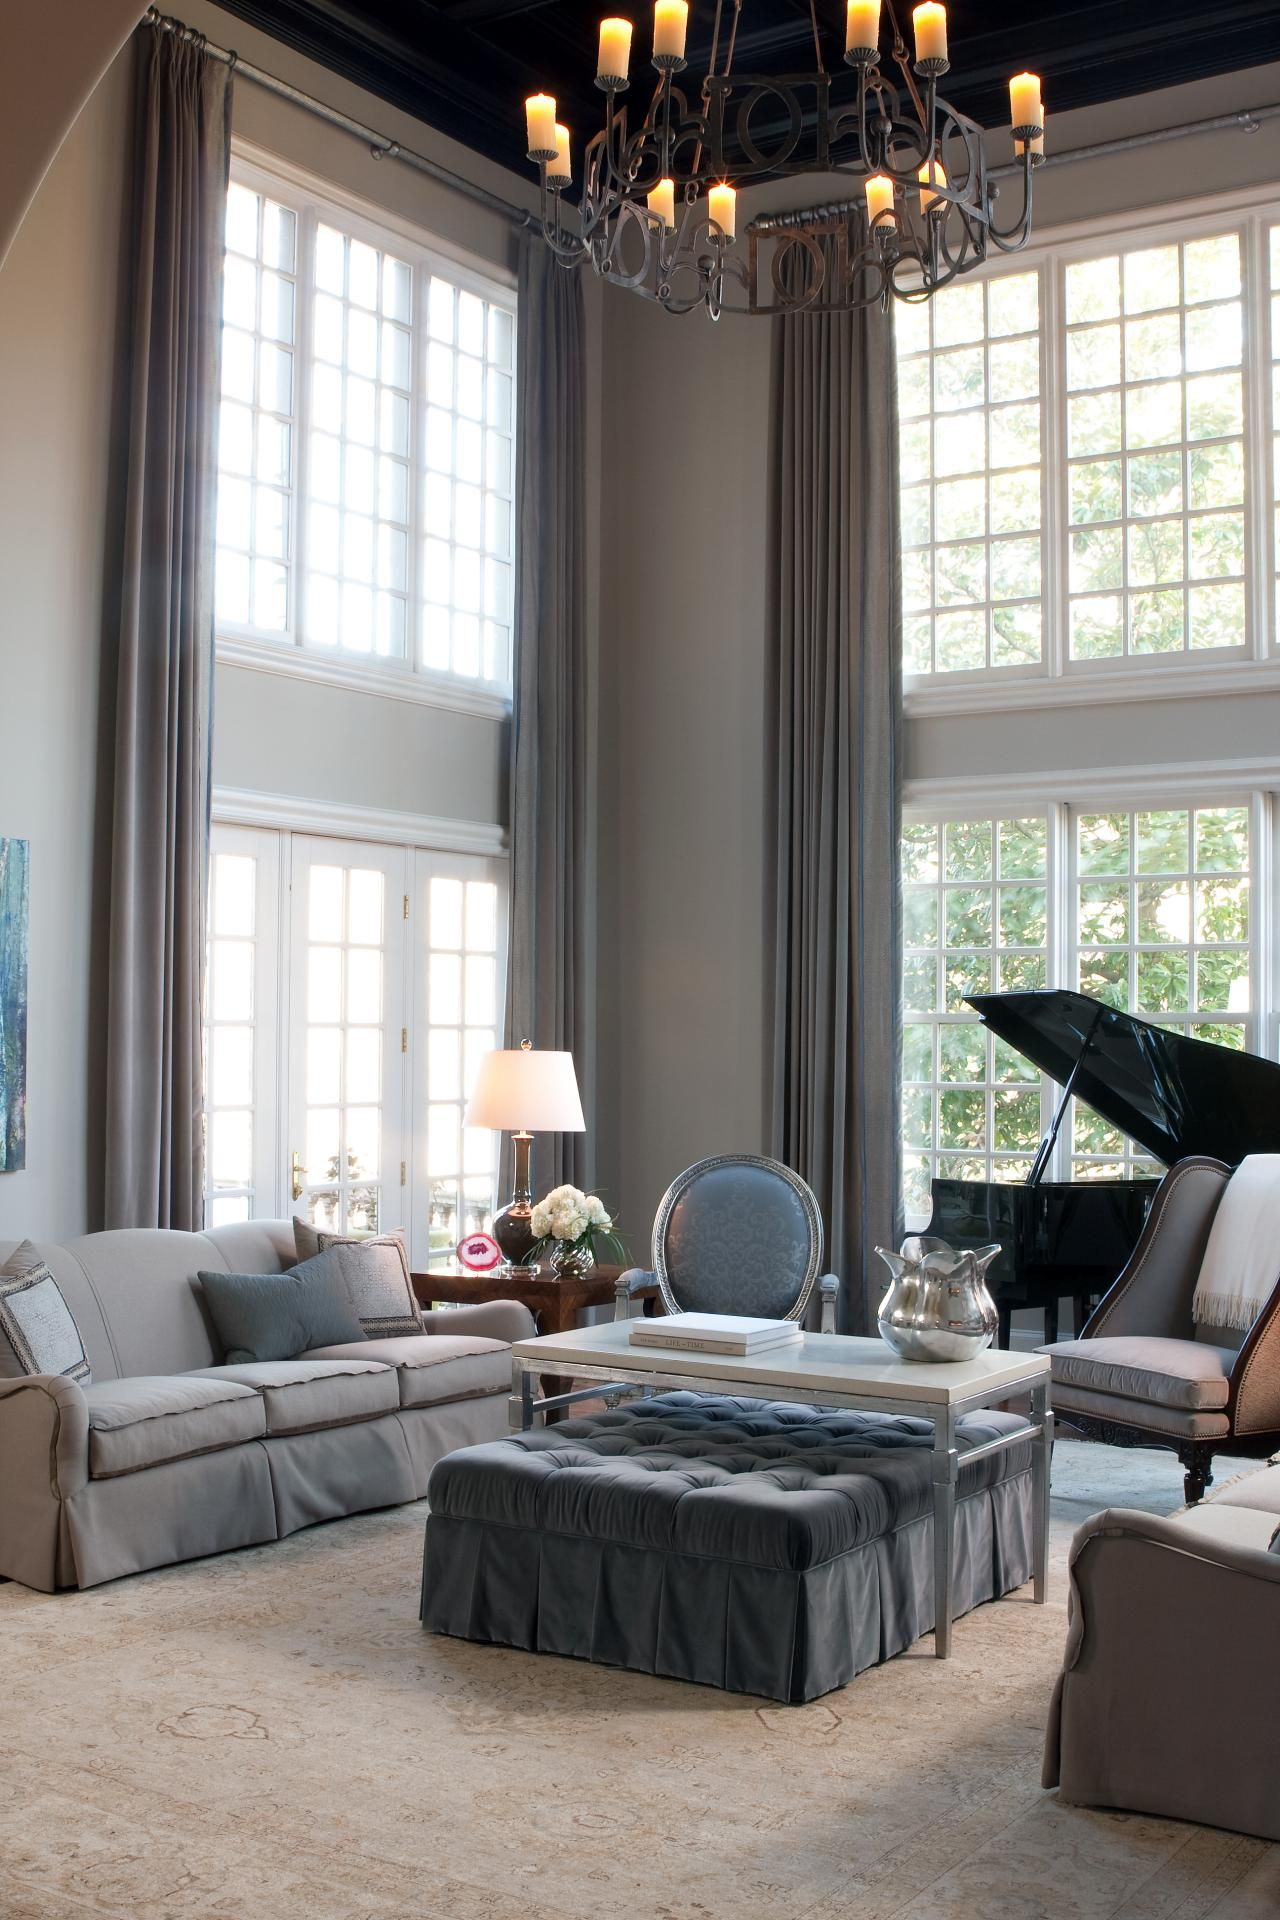 Fantastic and unique window treatments for living room b01